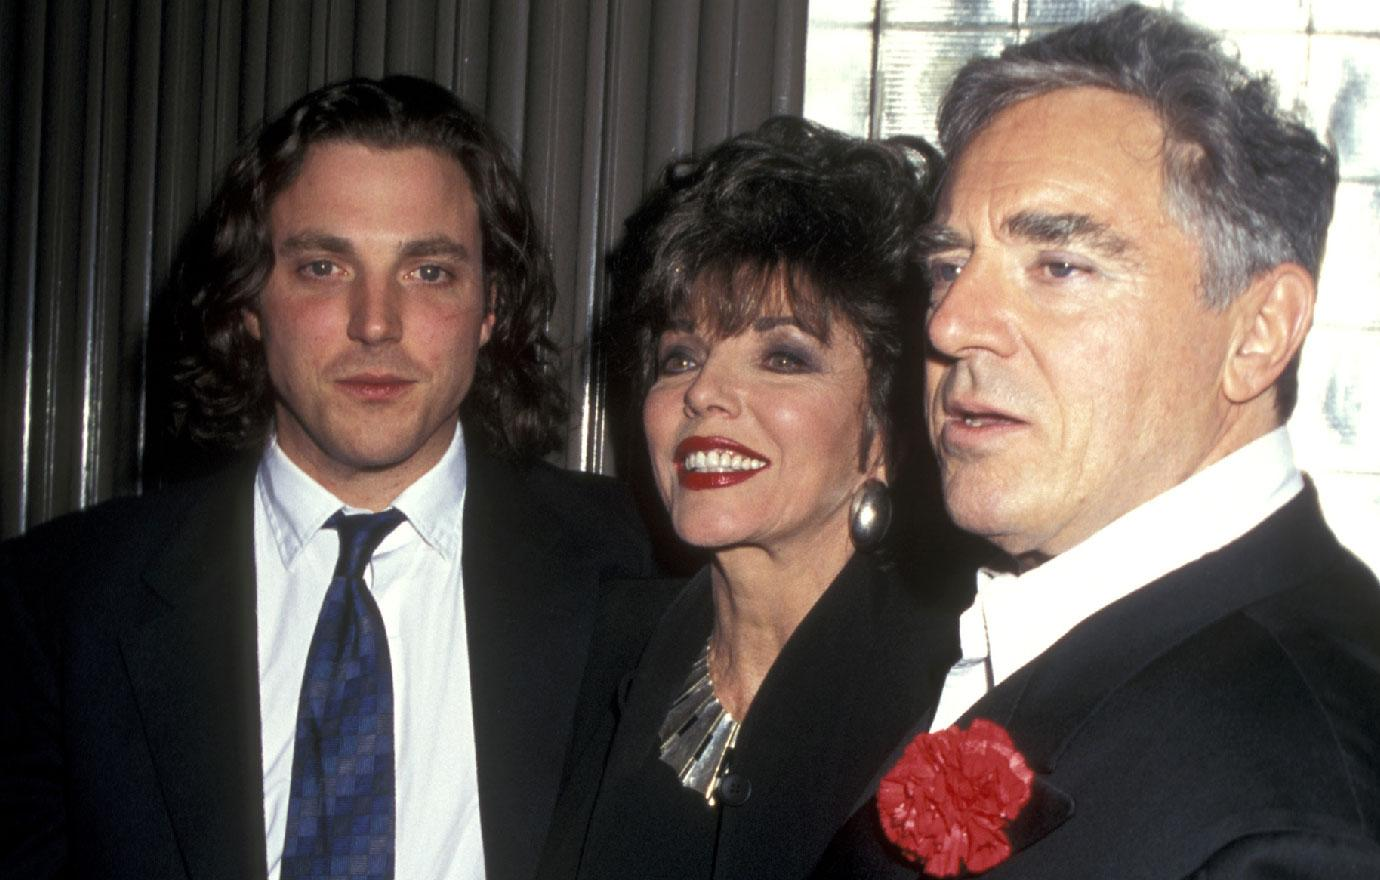 Joan Collins Son Says His Dad Anthony Newley A Pedophile